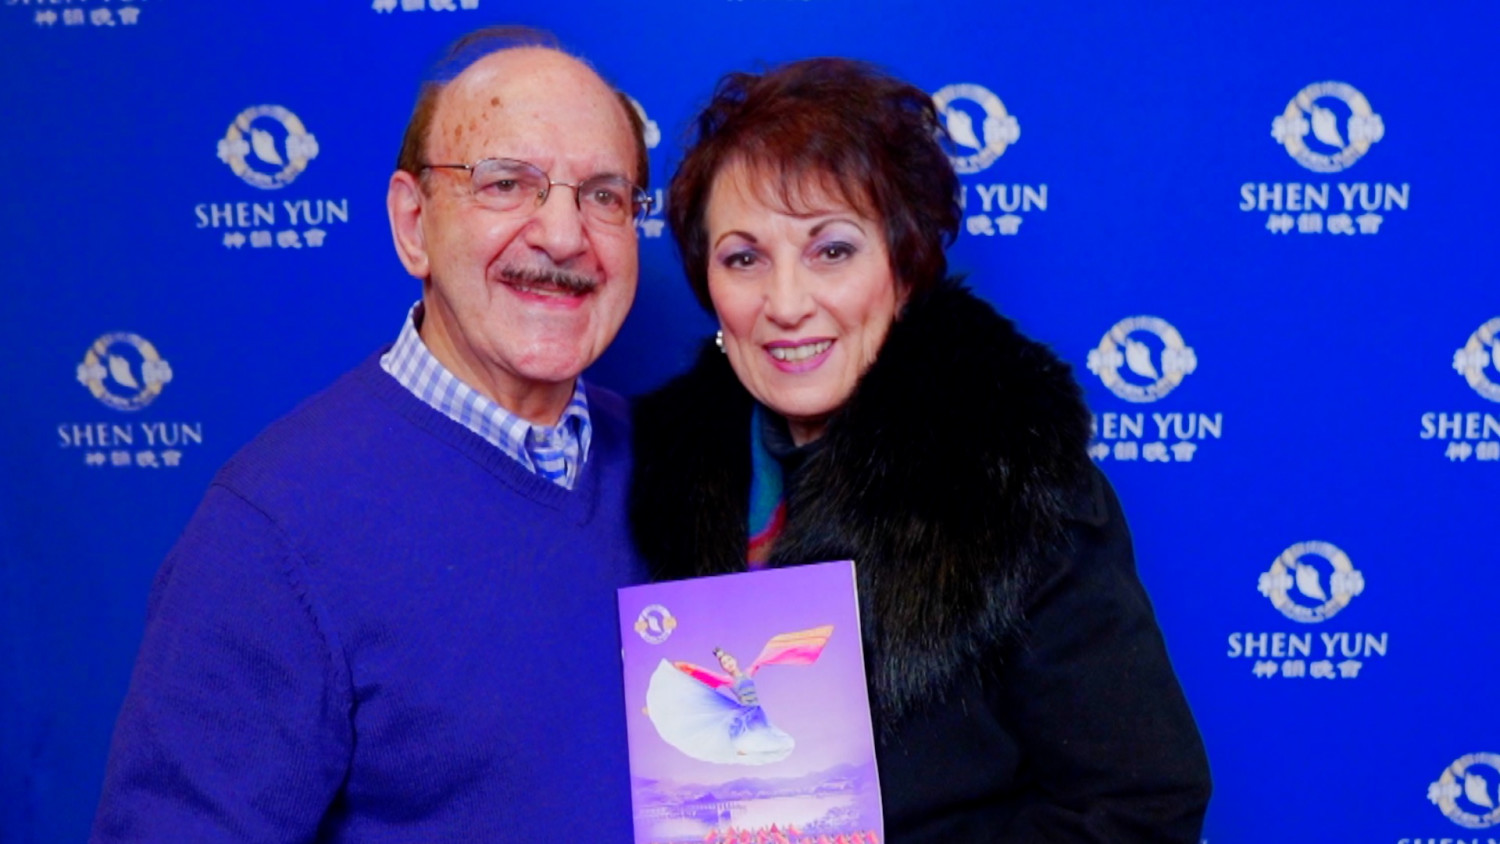 Shen Yun's Artistic Level is The Best, Says Vocal Artist